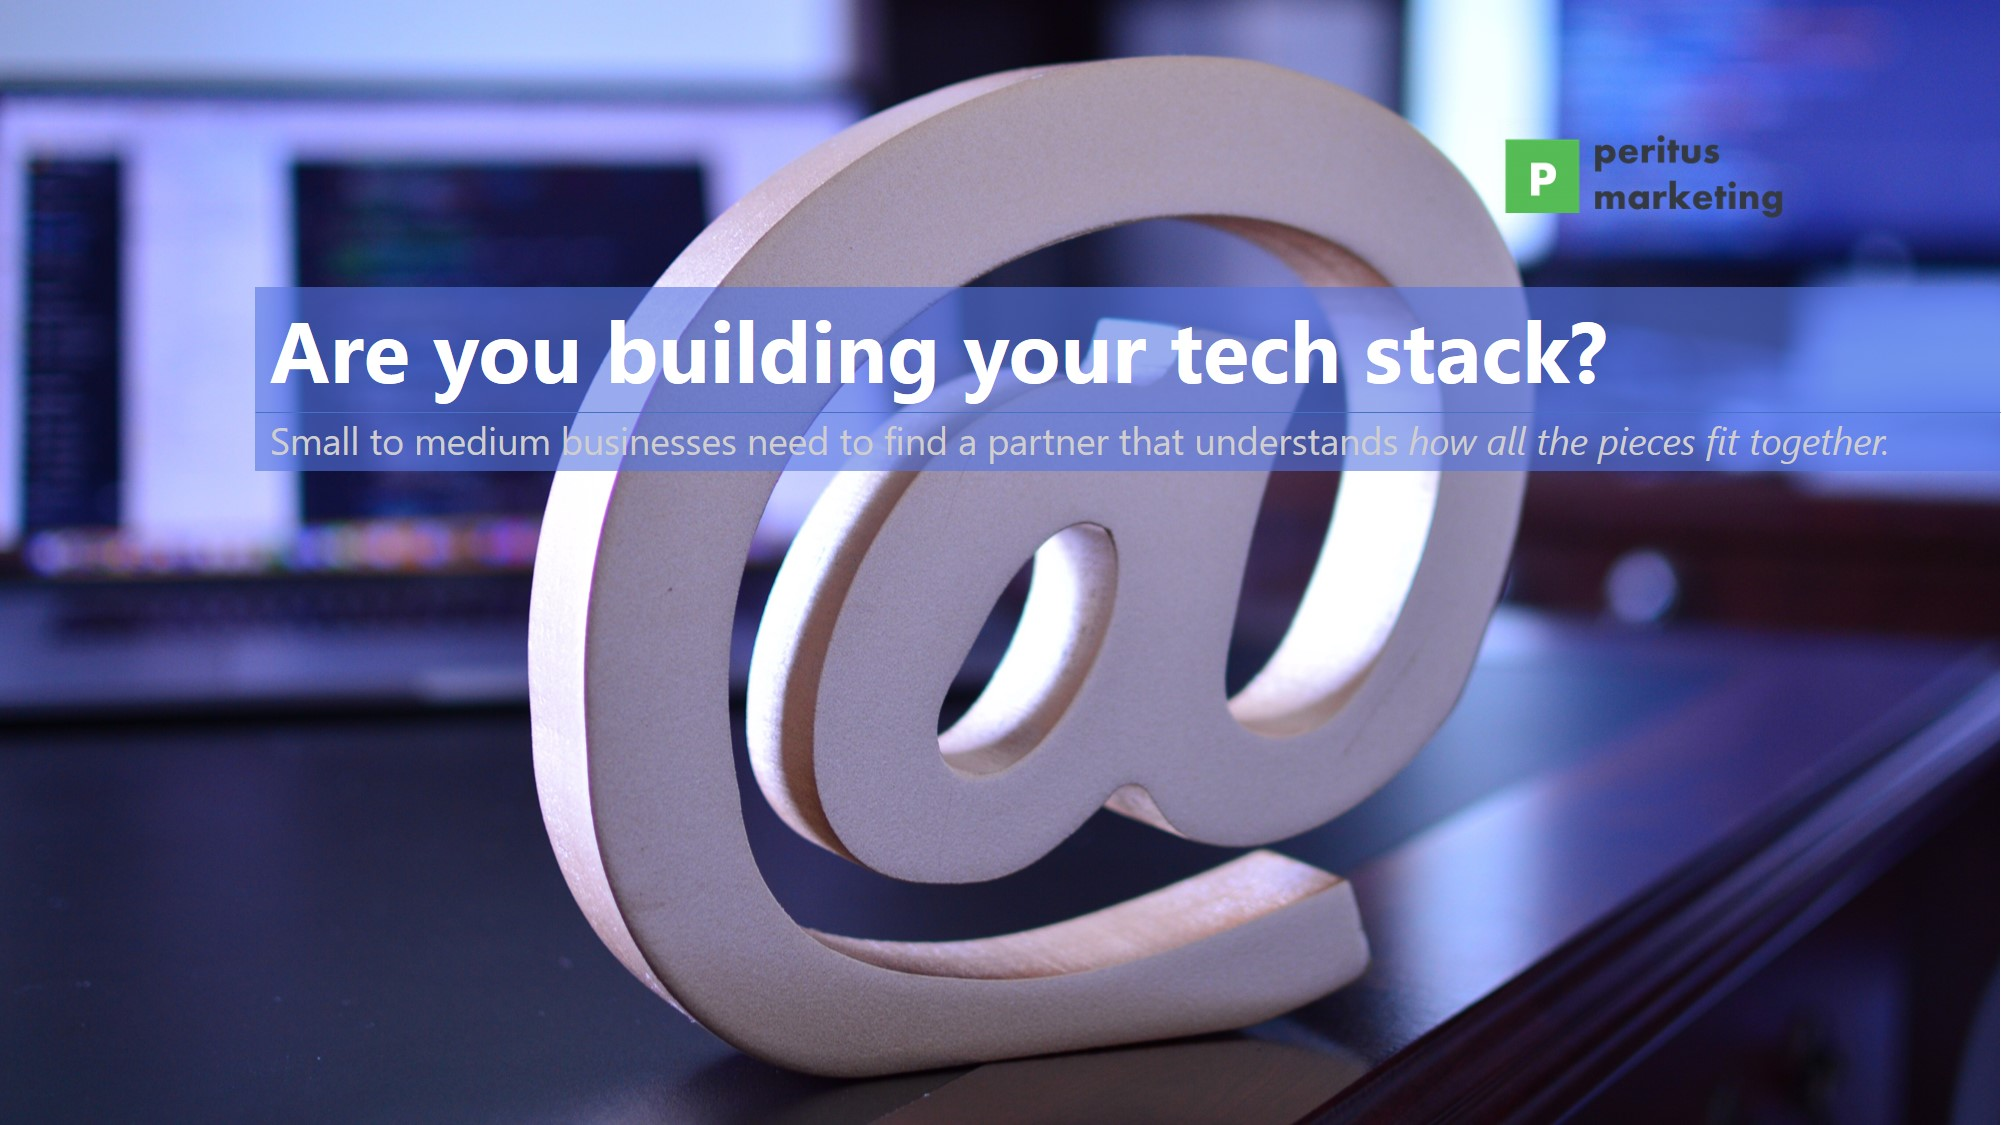 Are you building your tech stack banner